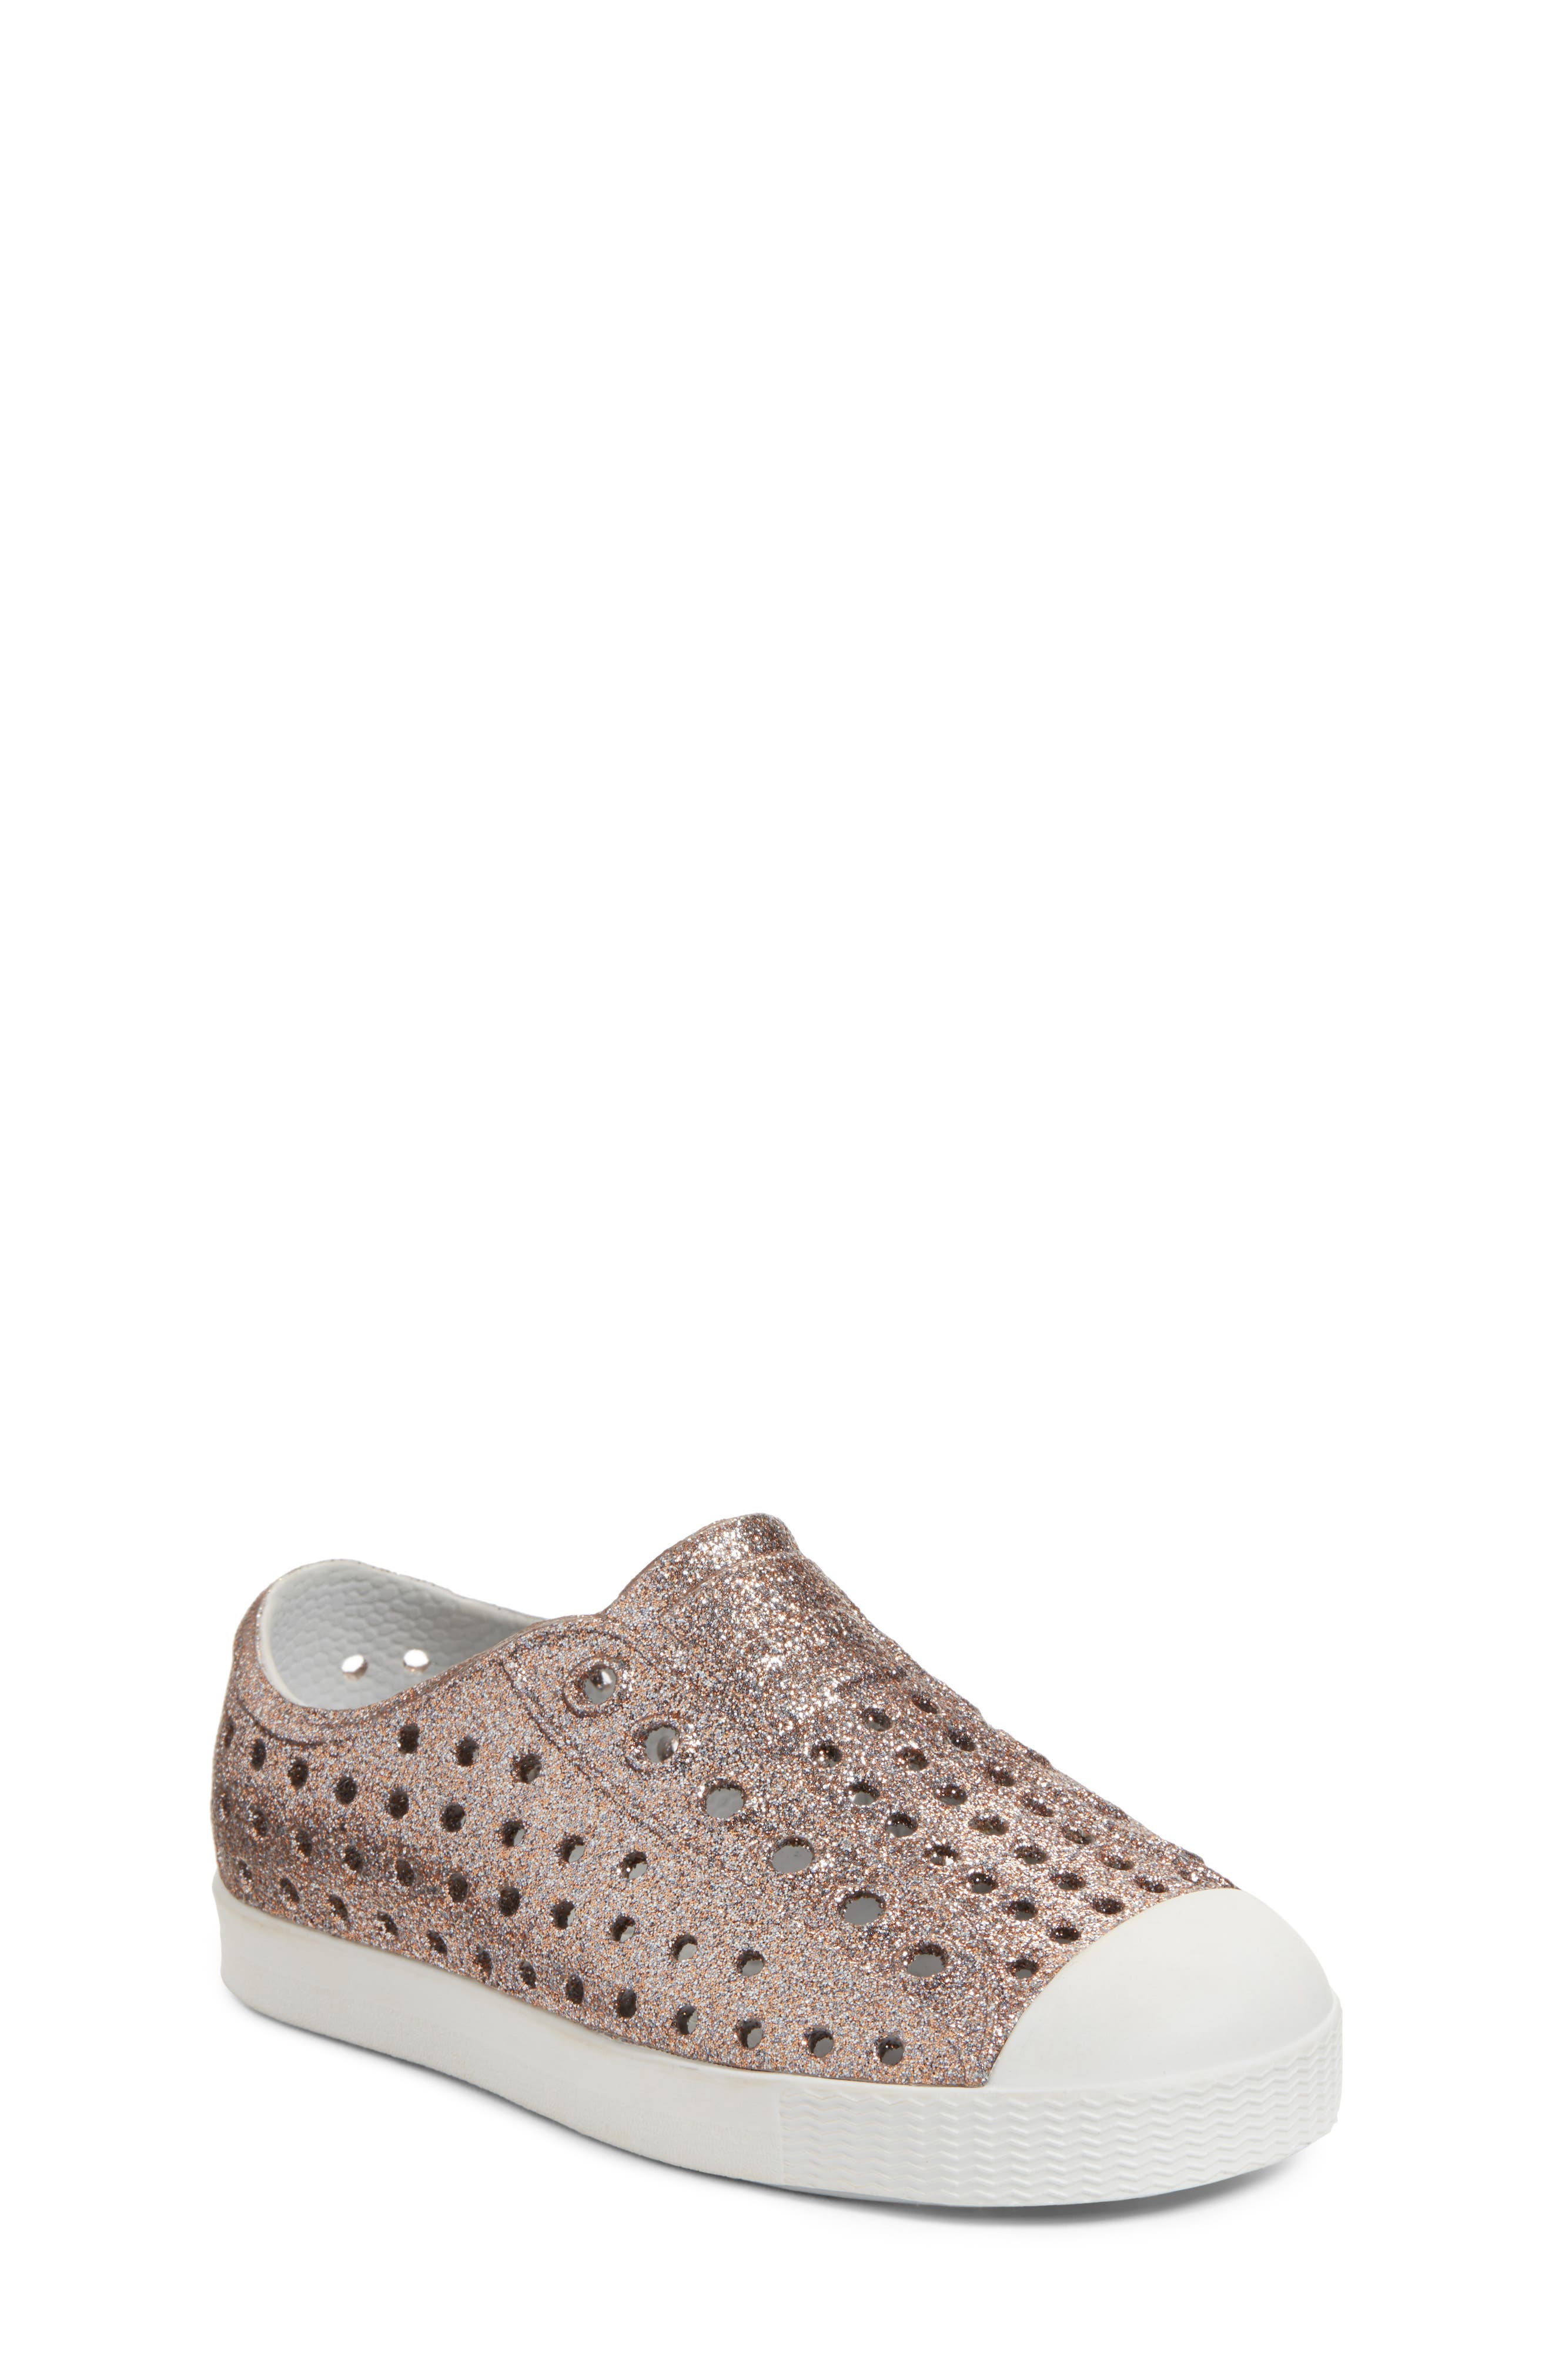 Jefferson - Bling Glitter Slip-On Sneaker,                             Main thumbnail 1, color,                             Metallic Bling/ Shell White